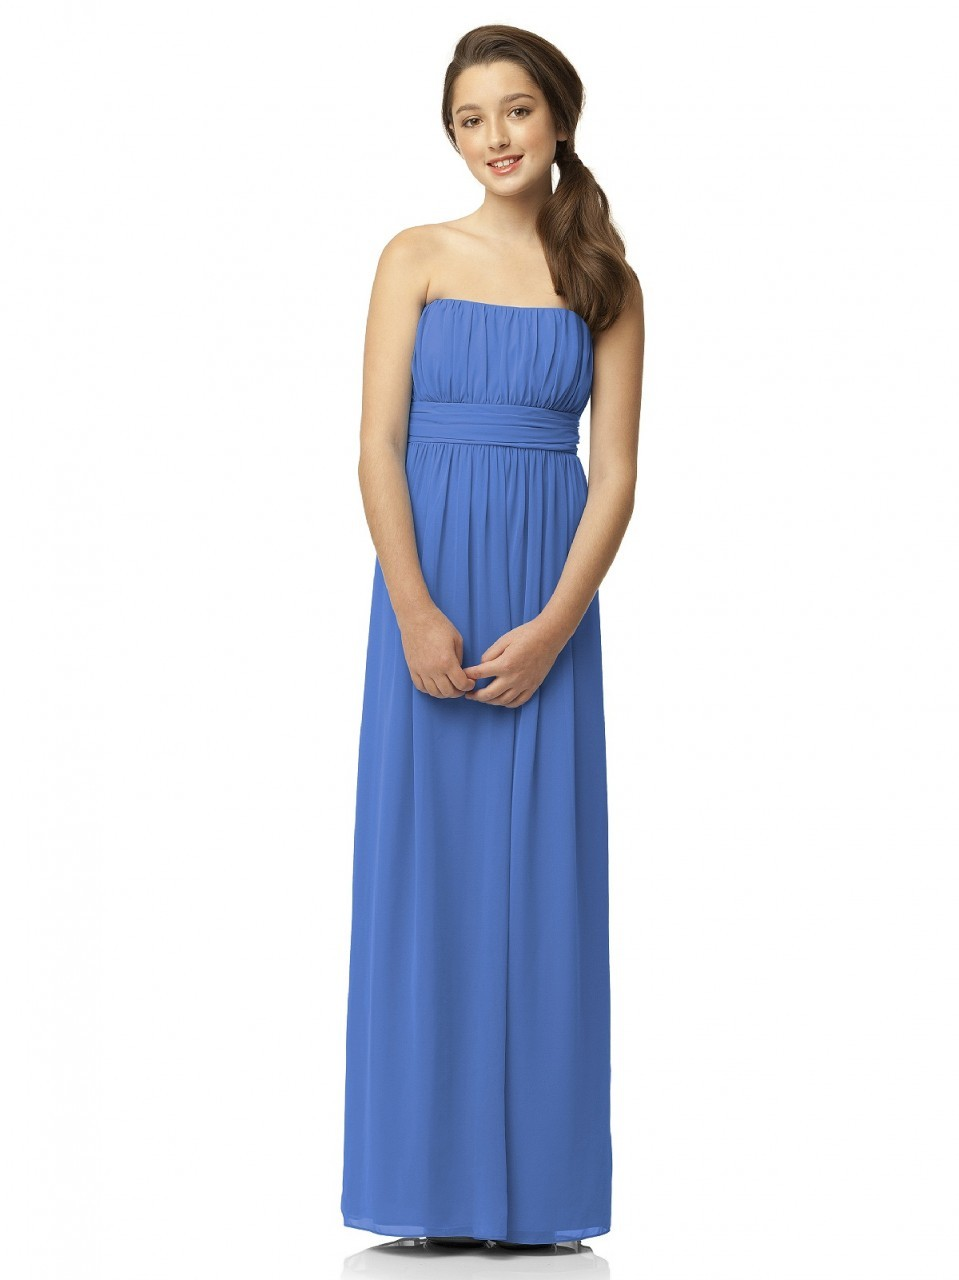 Jr Bridesmaid Dress